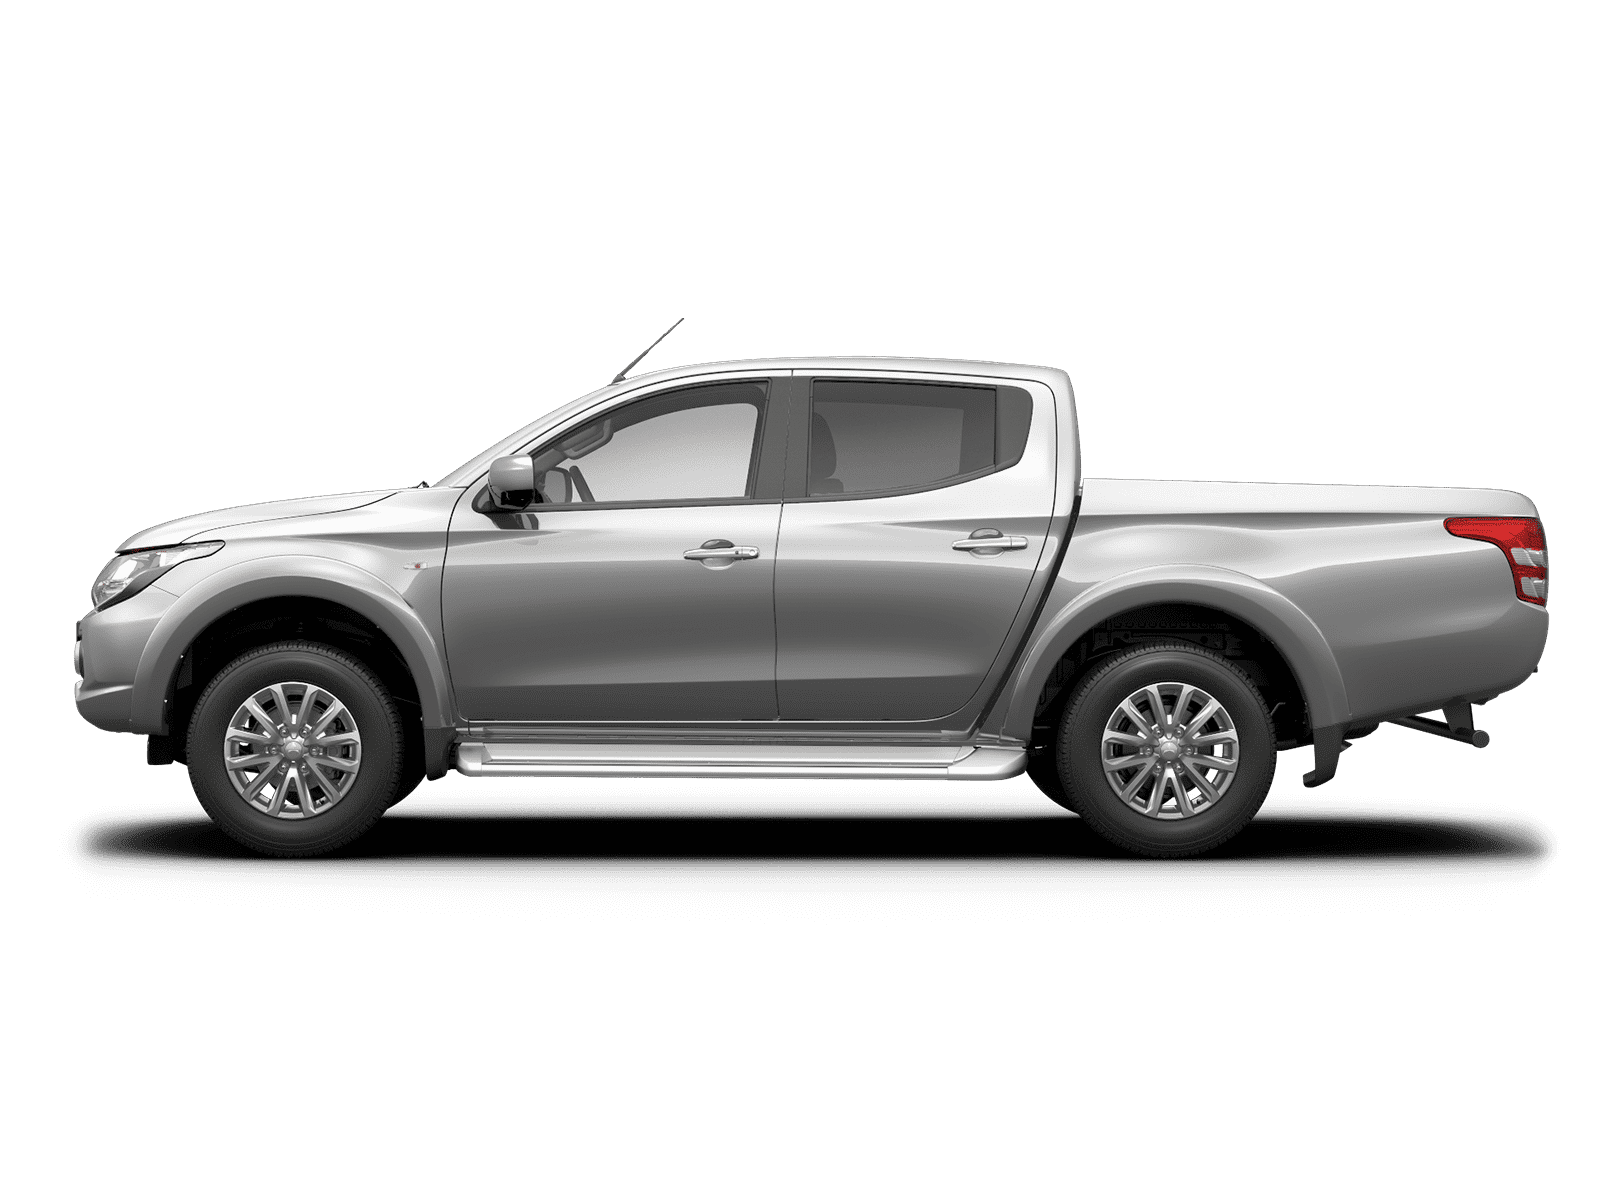 Mitsubishi 19MY L200 Double Cab Range Stirling Silver